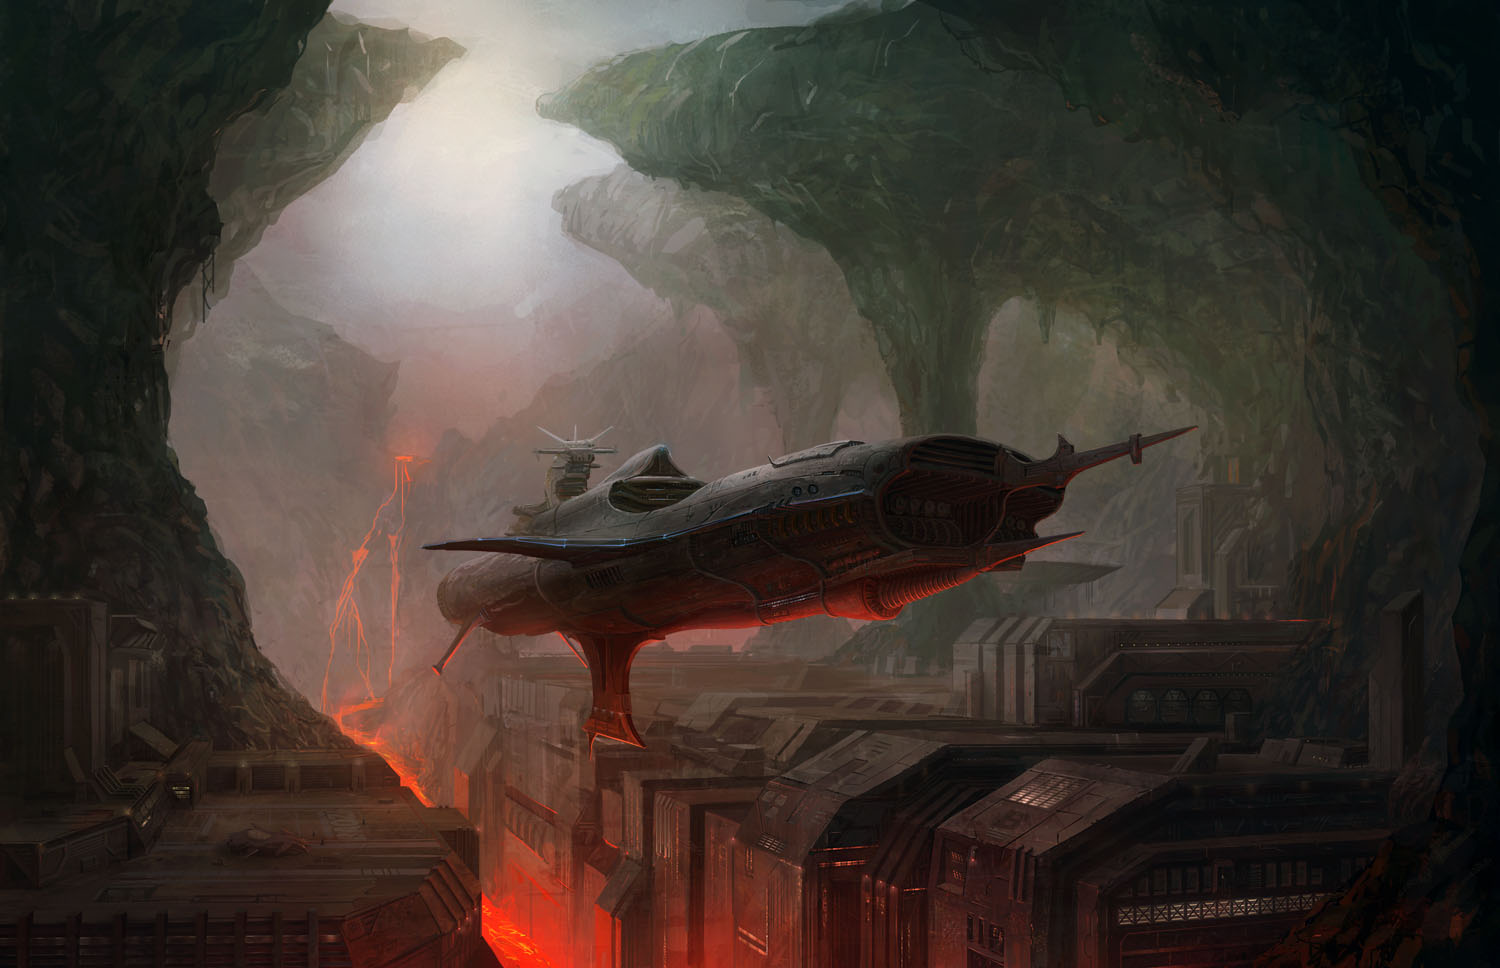 Spaceship wallpaper and background image 1500x968 id - Spaceship wallpaper ...